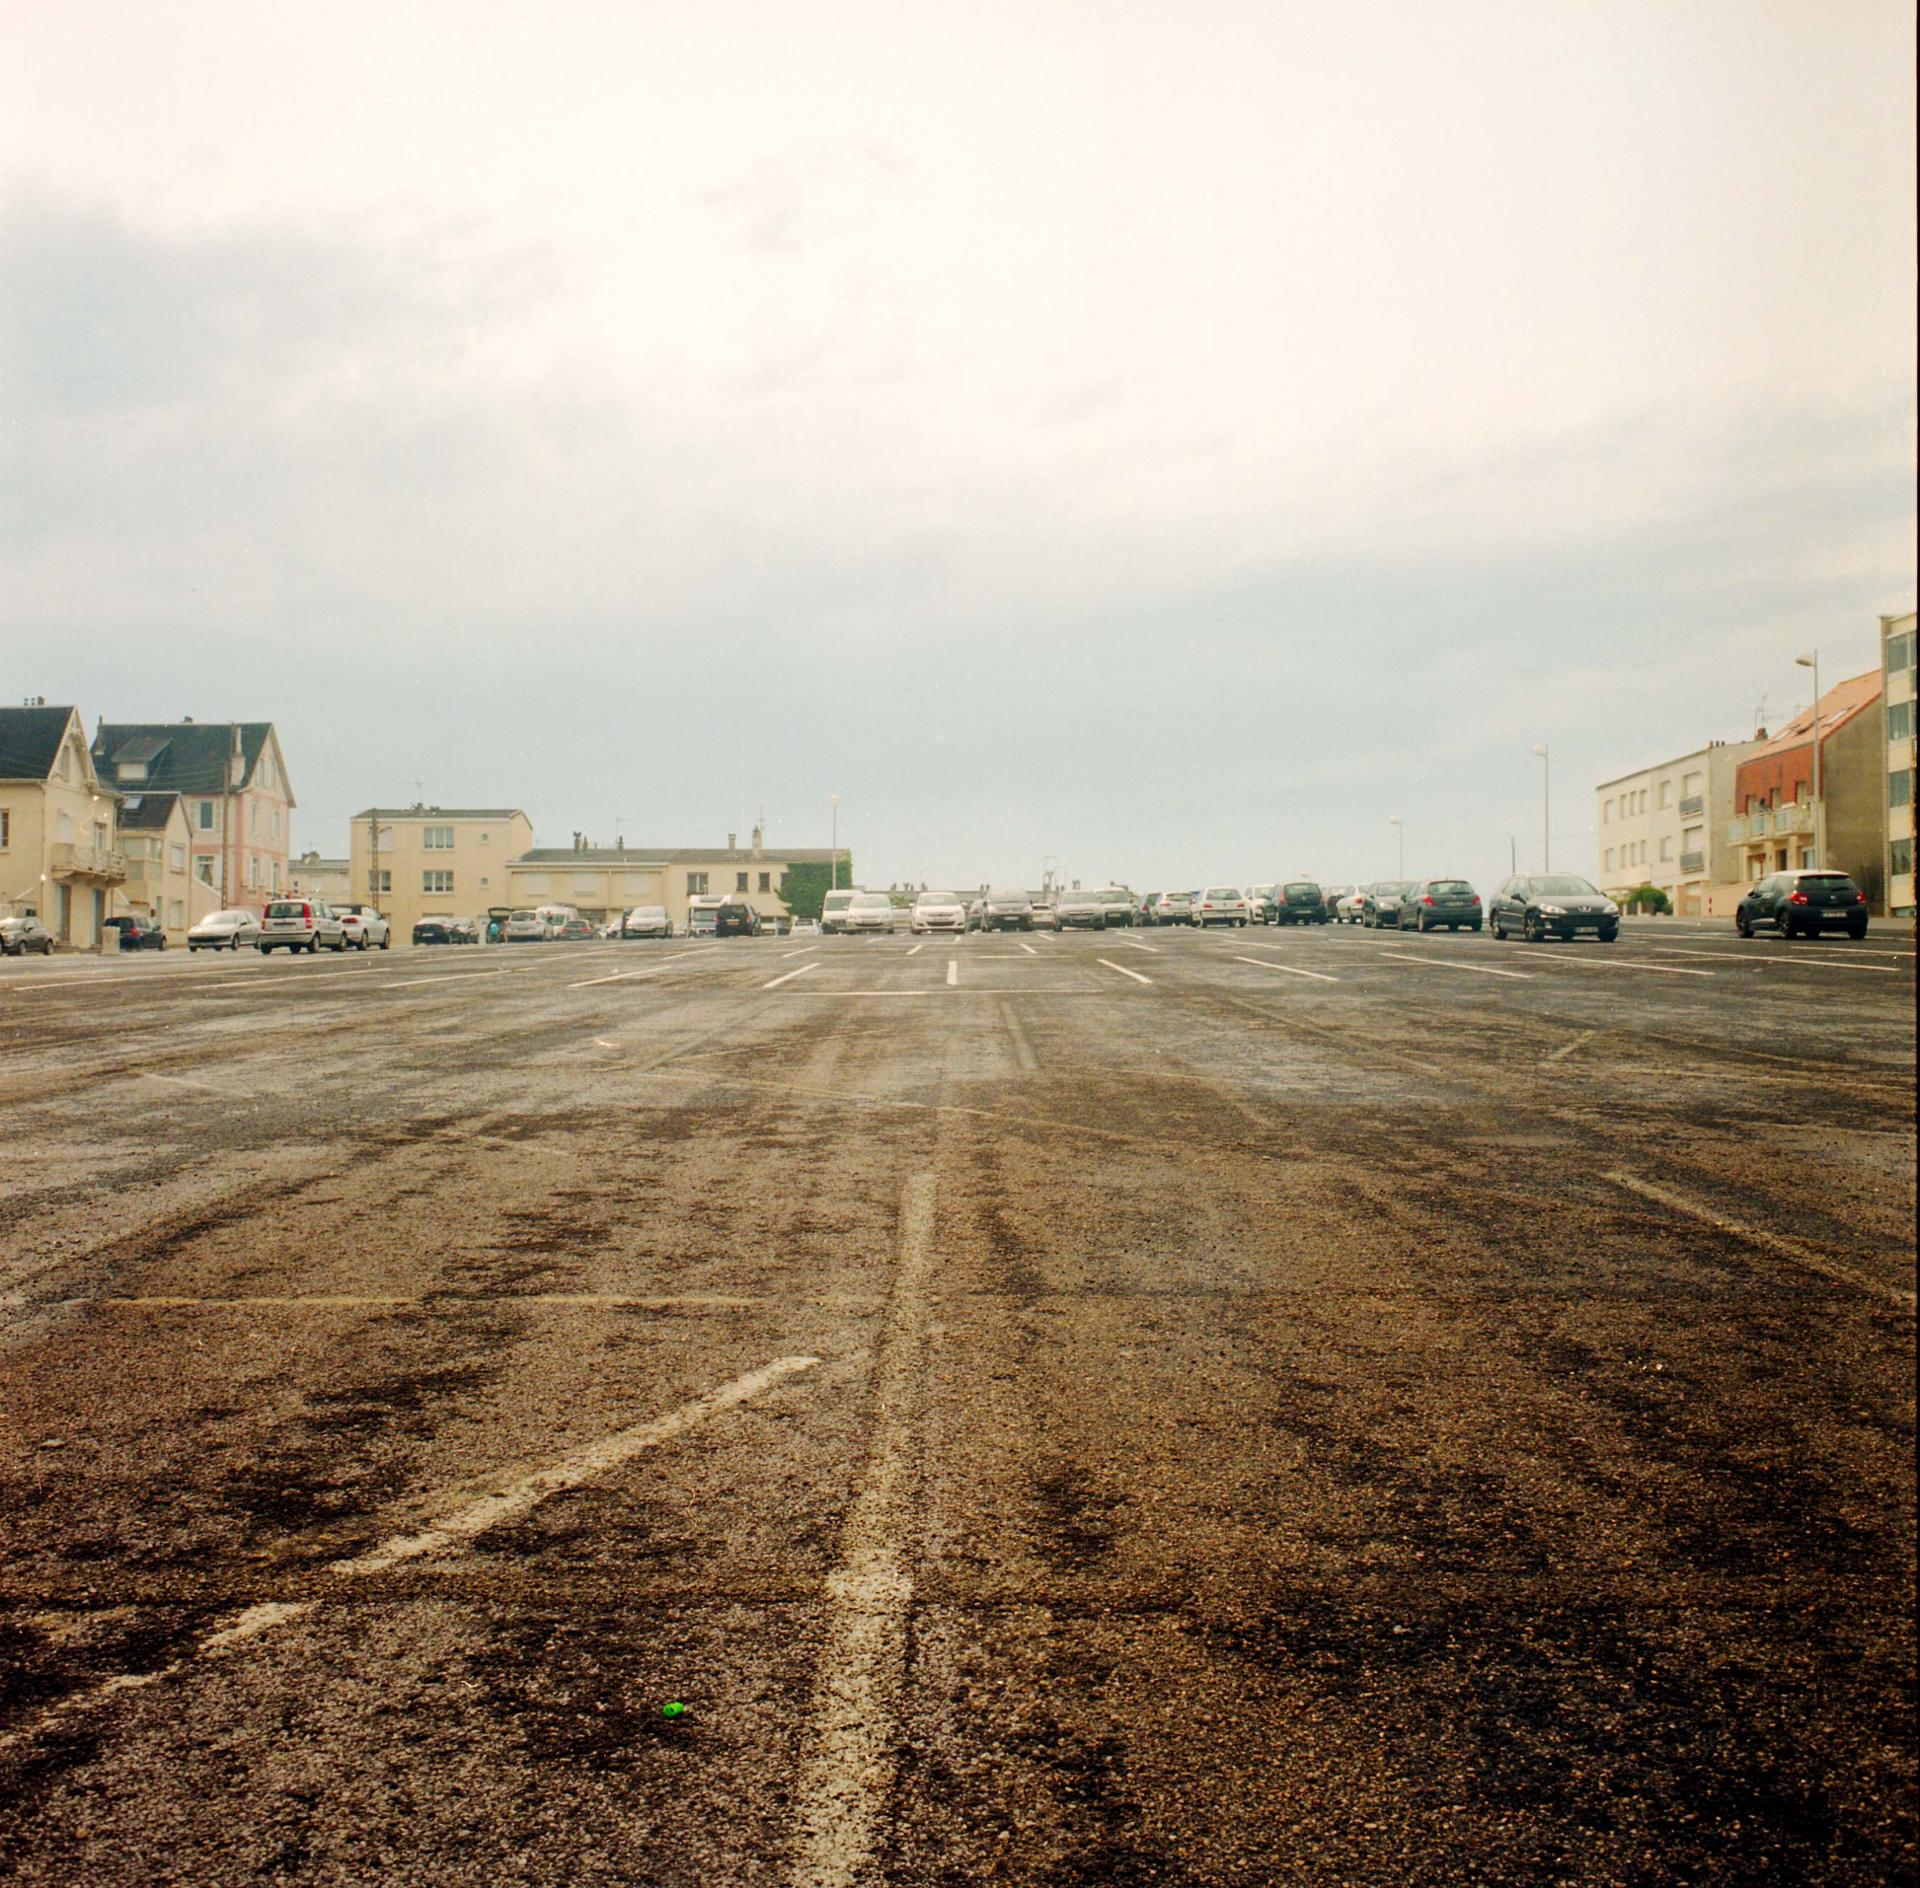 Le Parking de Berck plage